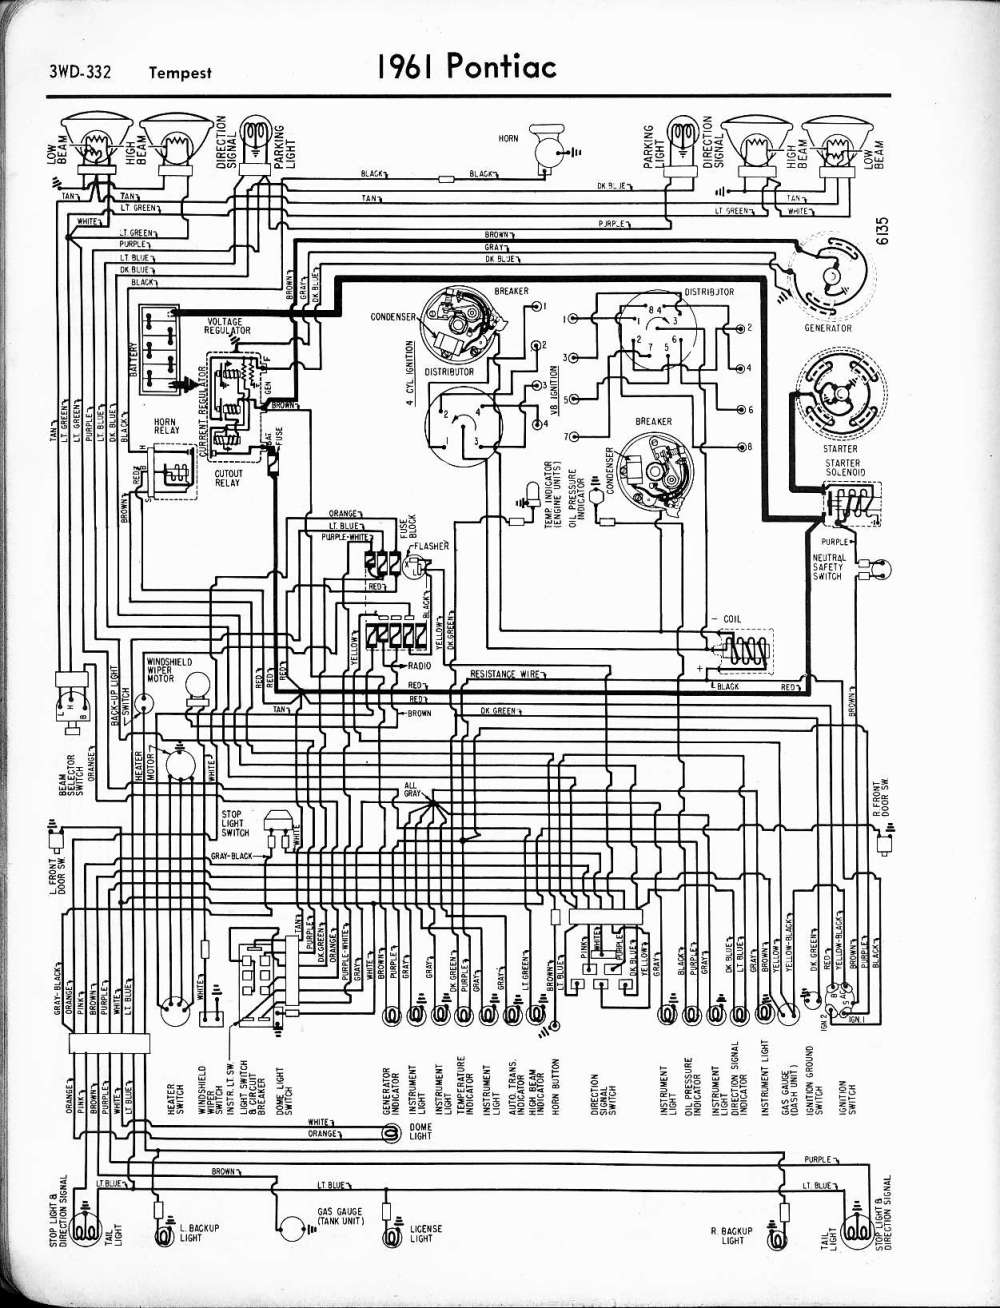 medium resolution of 1960 pontiac wiring diagram wiring diagram meta 2000 pontiac montana wiring diagram 1960 pontiac wiring